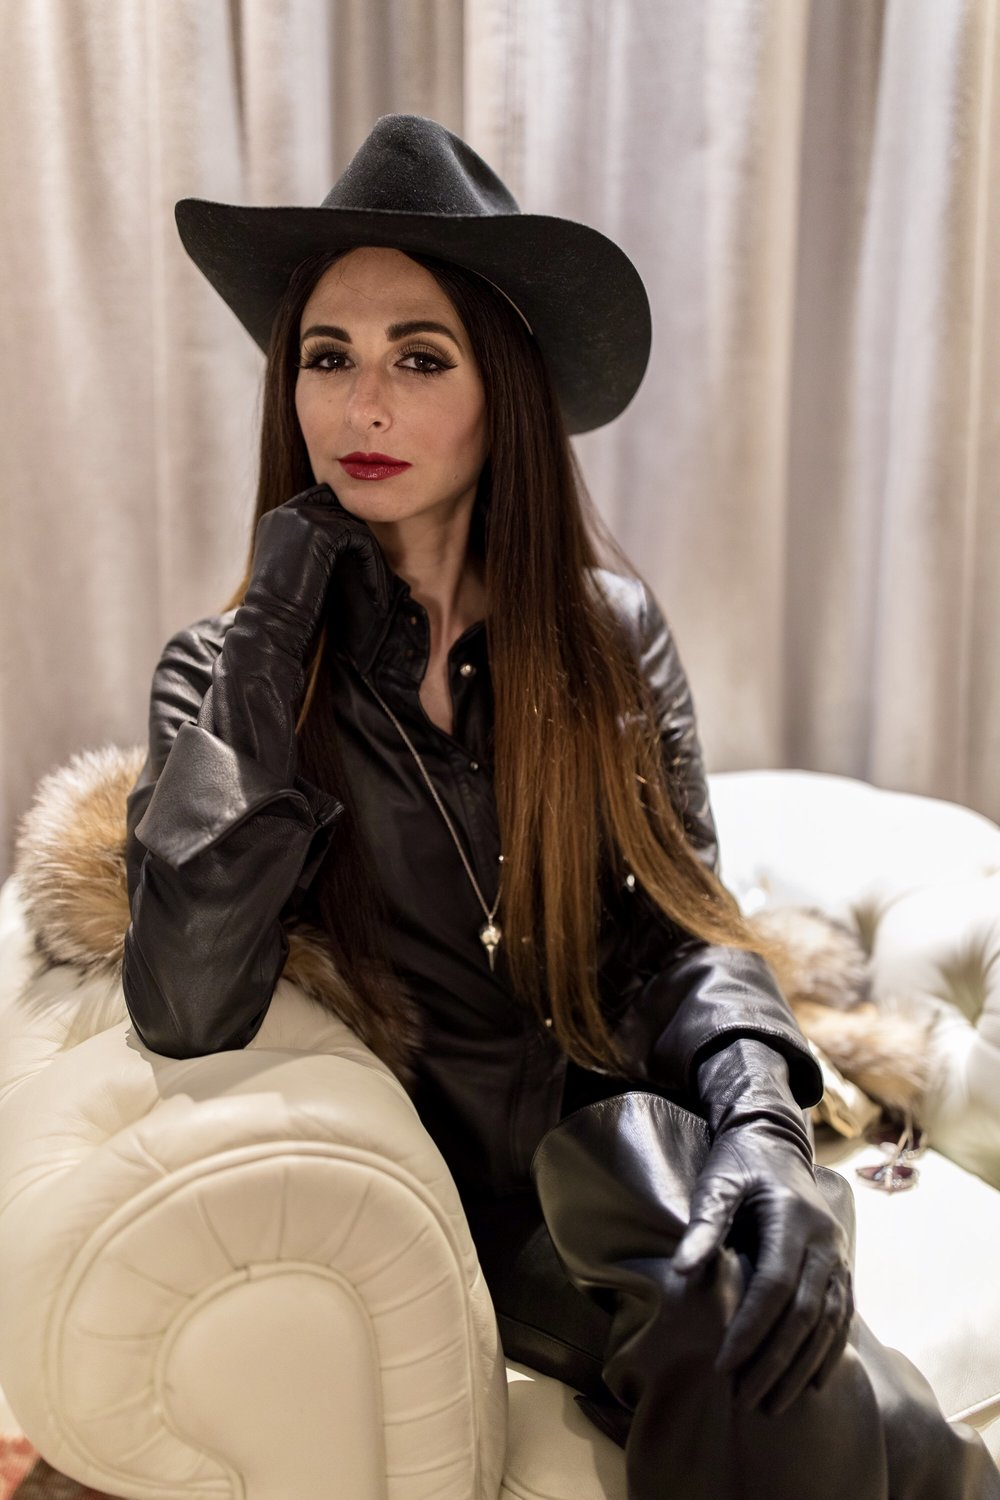 A Leather Clad Goddess's Musings On Life